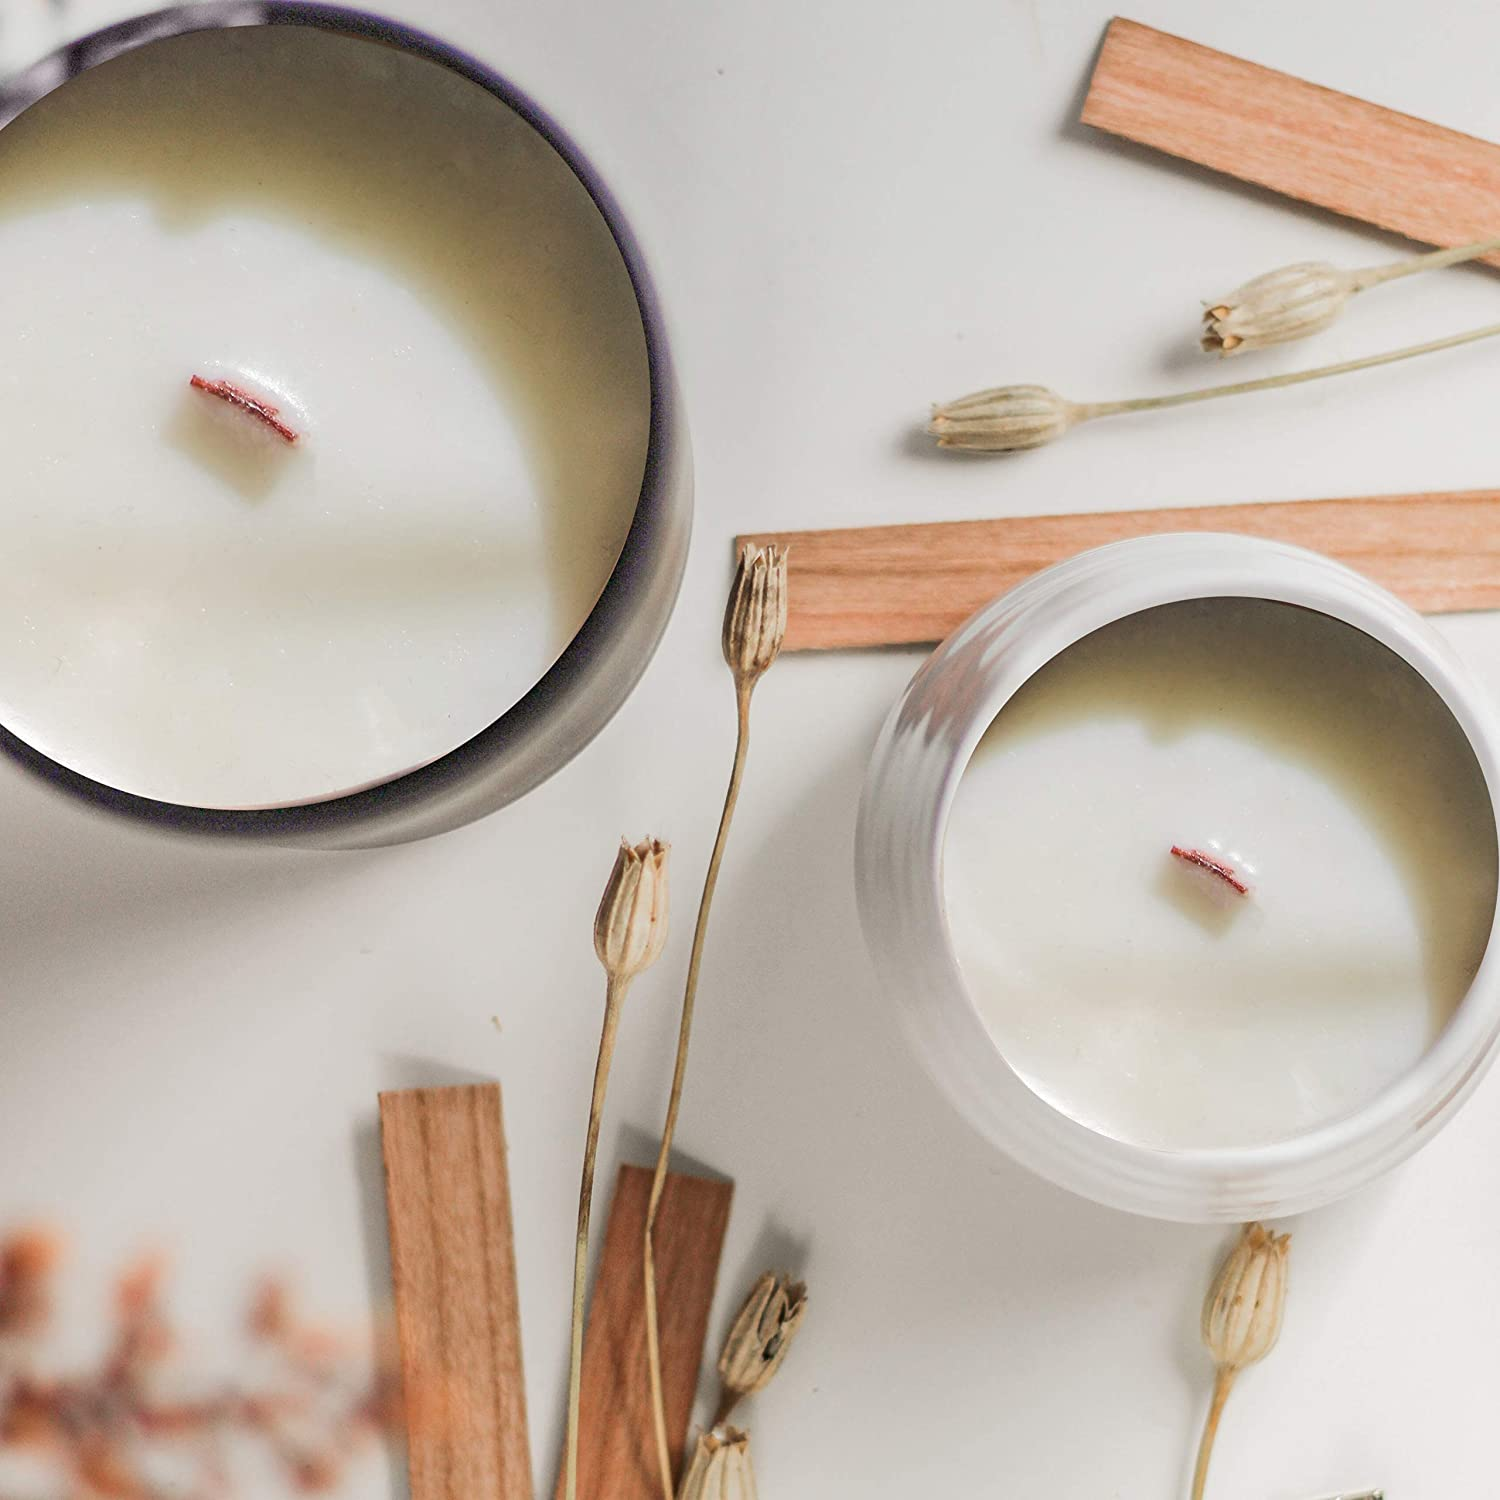 Clips Crackling Candle Wicks 100 Wicks, X-Large for Coconut The Wooden Wick Co Soy Wax Blend Candles